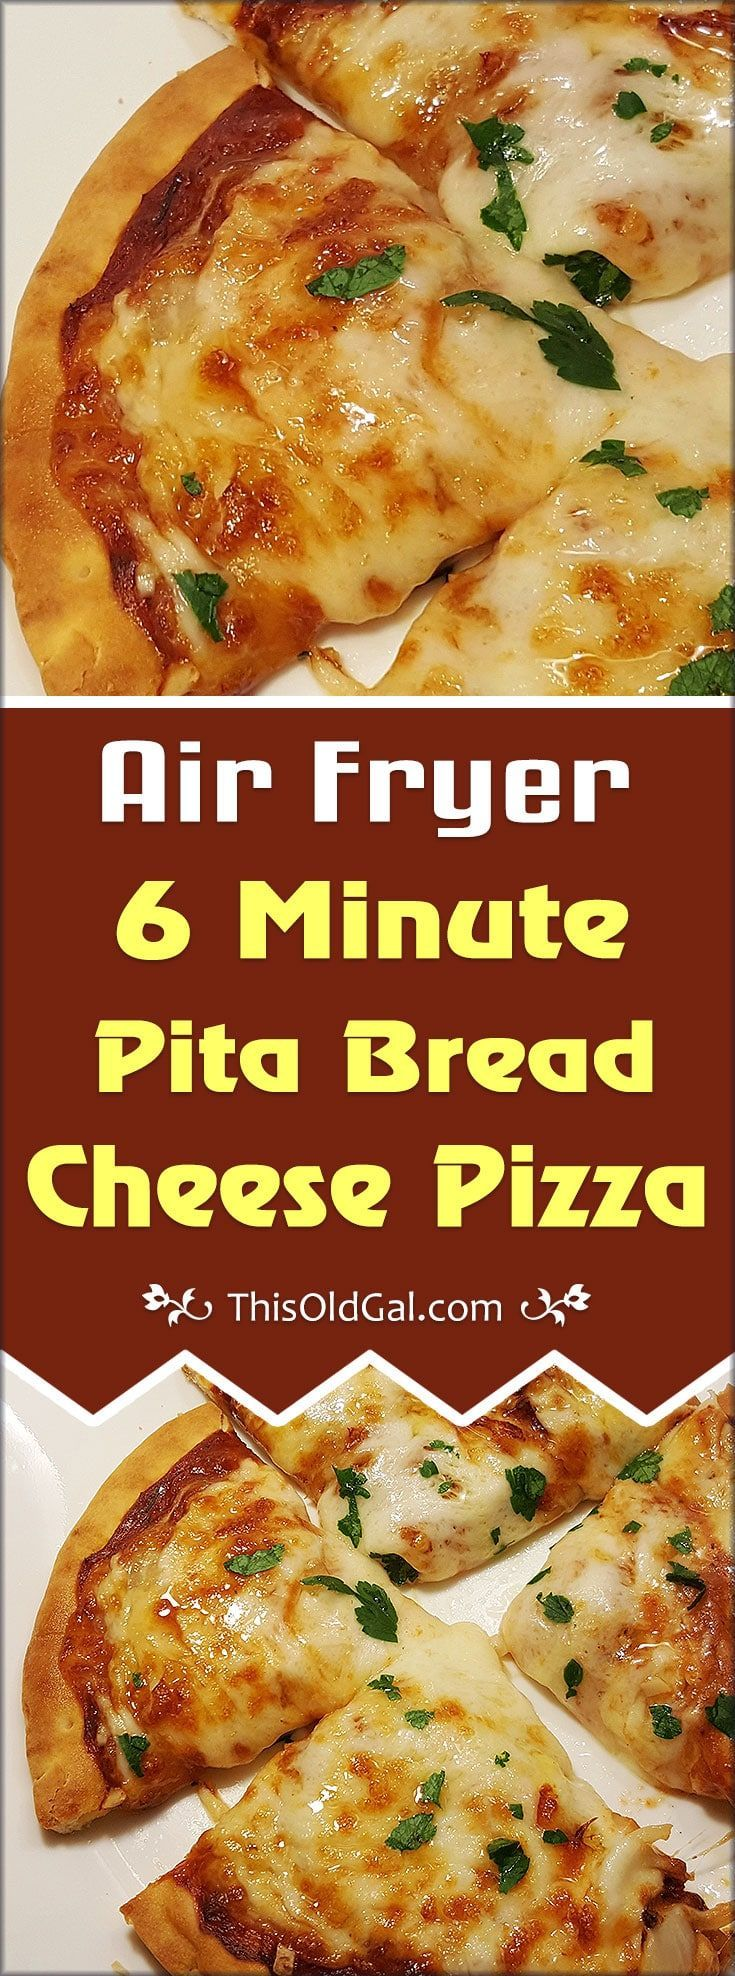 Air Fryer 6 Minute Pita Bread Cheese Pizza with Pepperoni, Onions, Garlic, Sausage is perfect when you want to make a quick lunch or snack. via @thisoldgalcooks